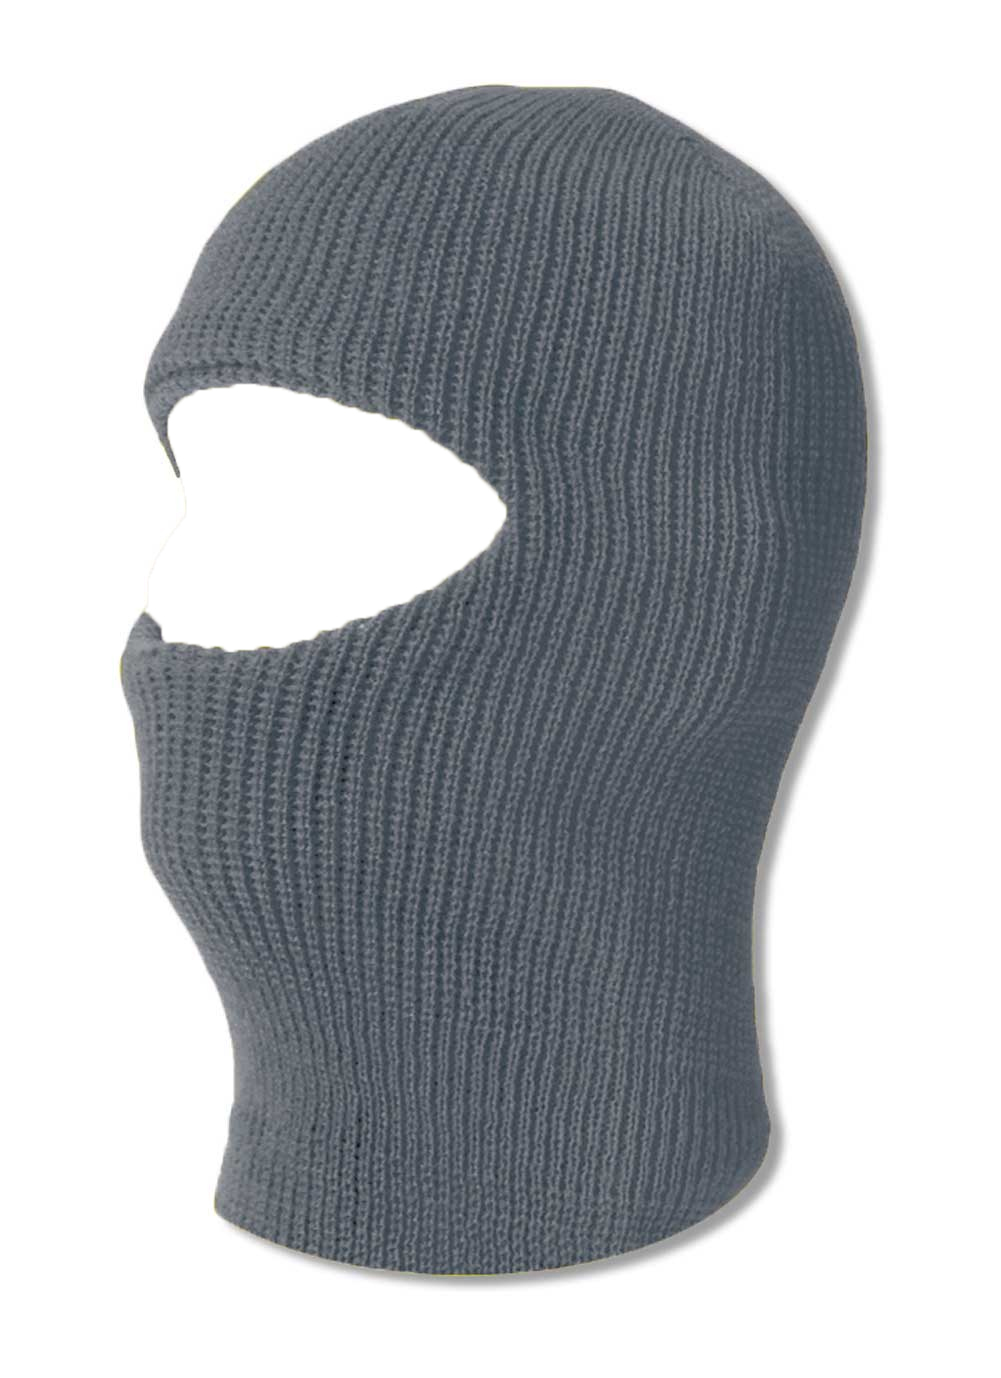 TopHeadwear One 1 Hole Ski Mask -Dark Grey by